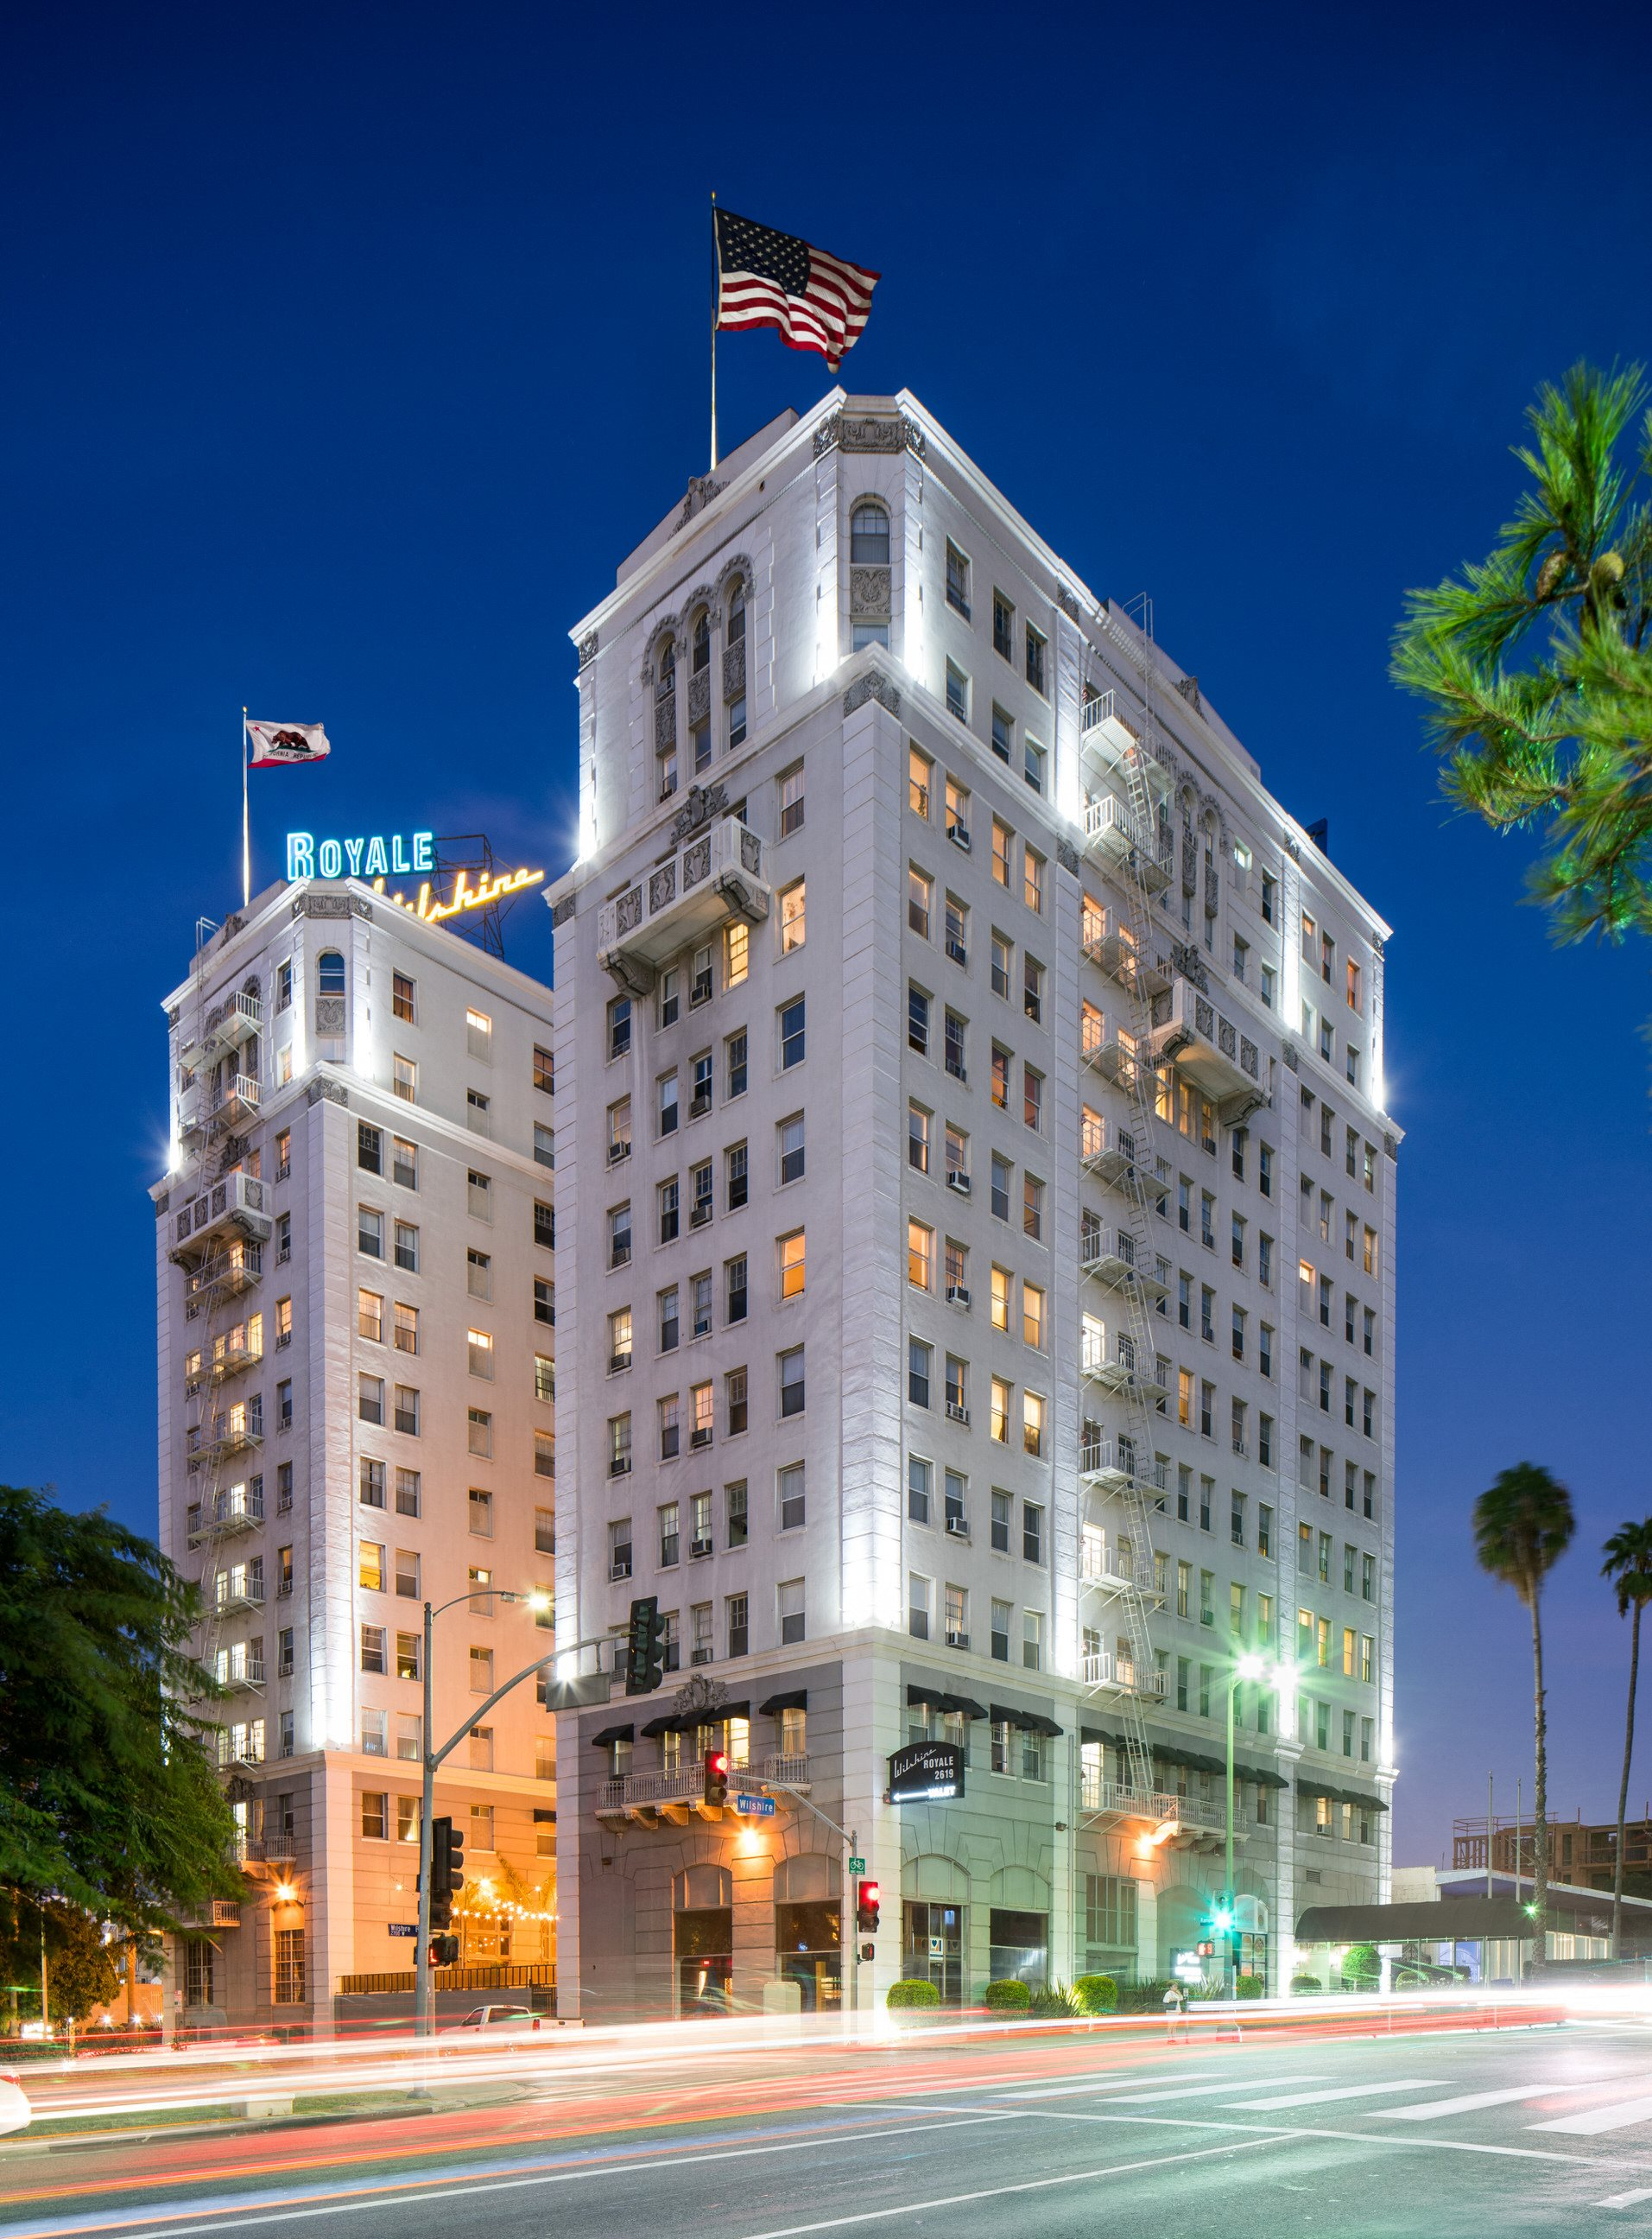 Wilshire Royale Apartments in Koreatown, Los Angeles, CA